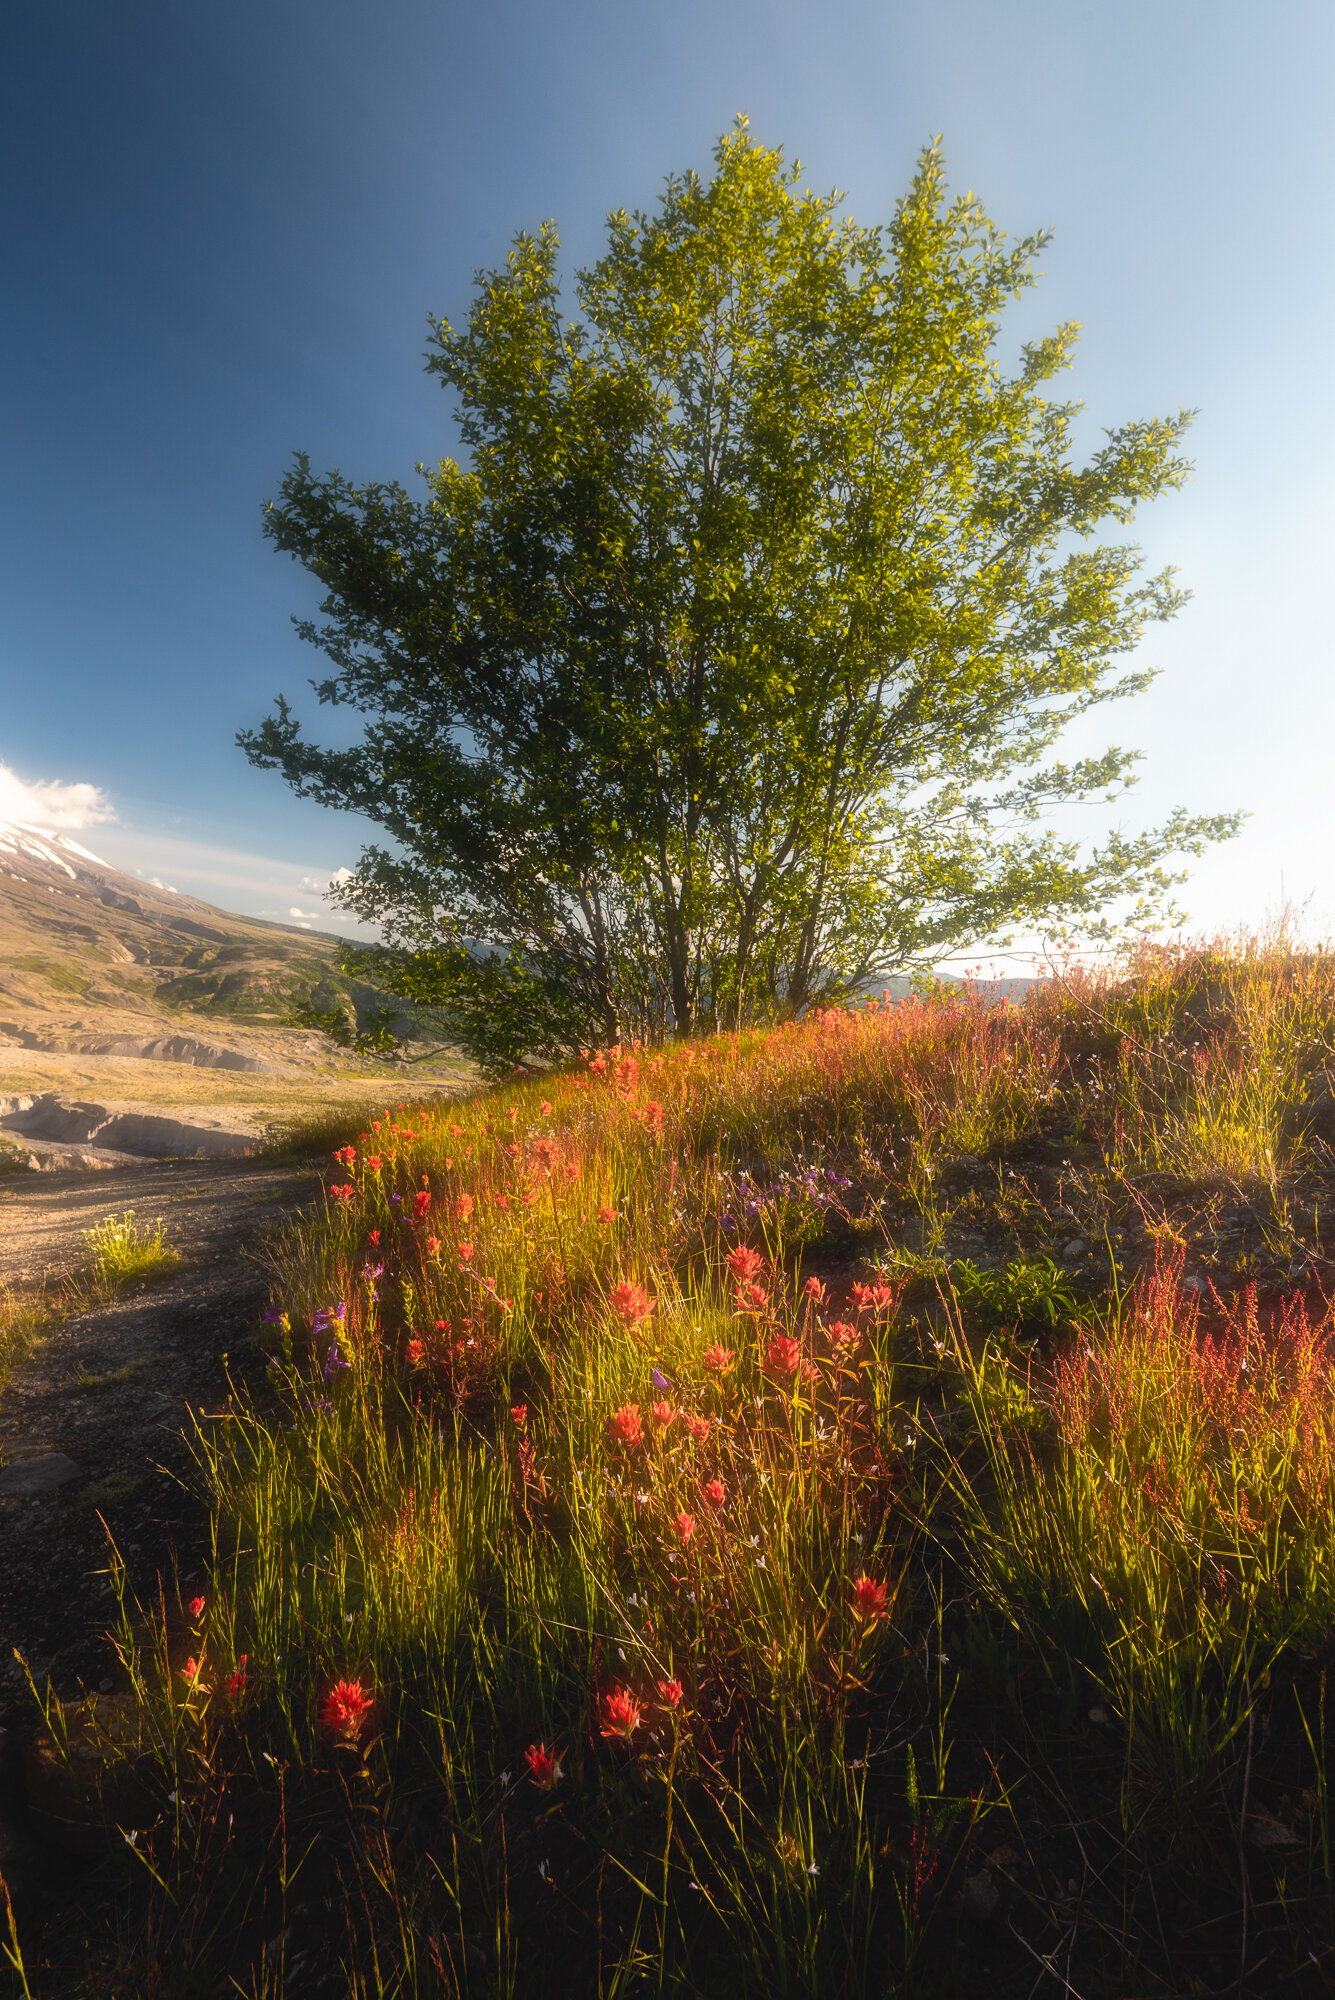 Mount St. Helens Photography: 'Field of Red'